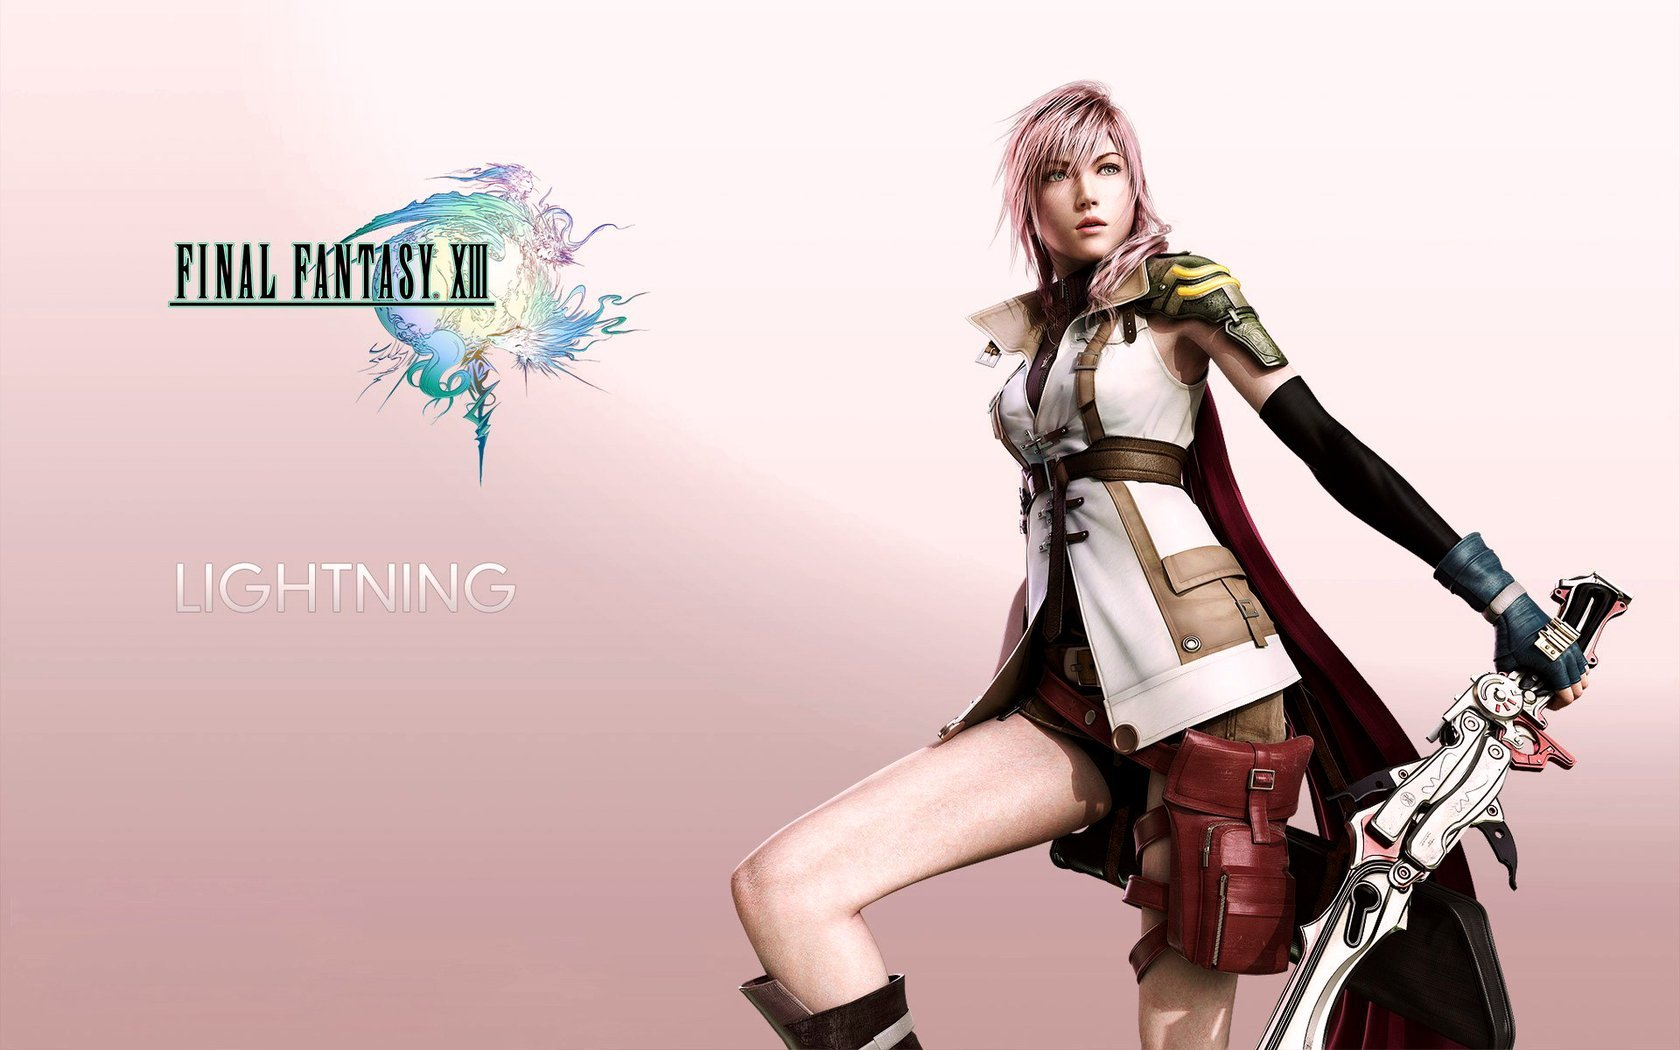 Download hd 1680x1050 Final Fantasy XIII (FF13) PC background ID:175314 for free